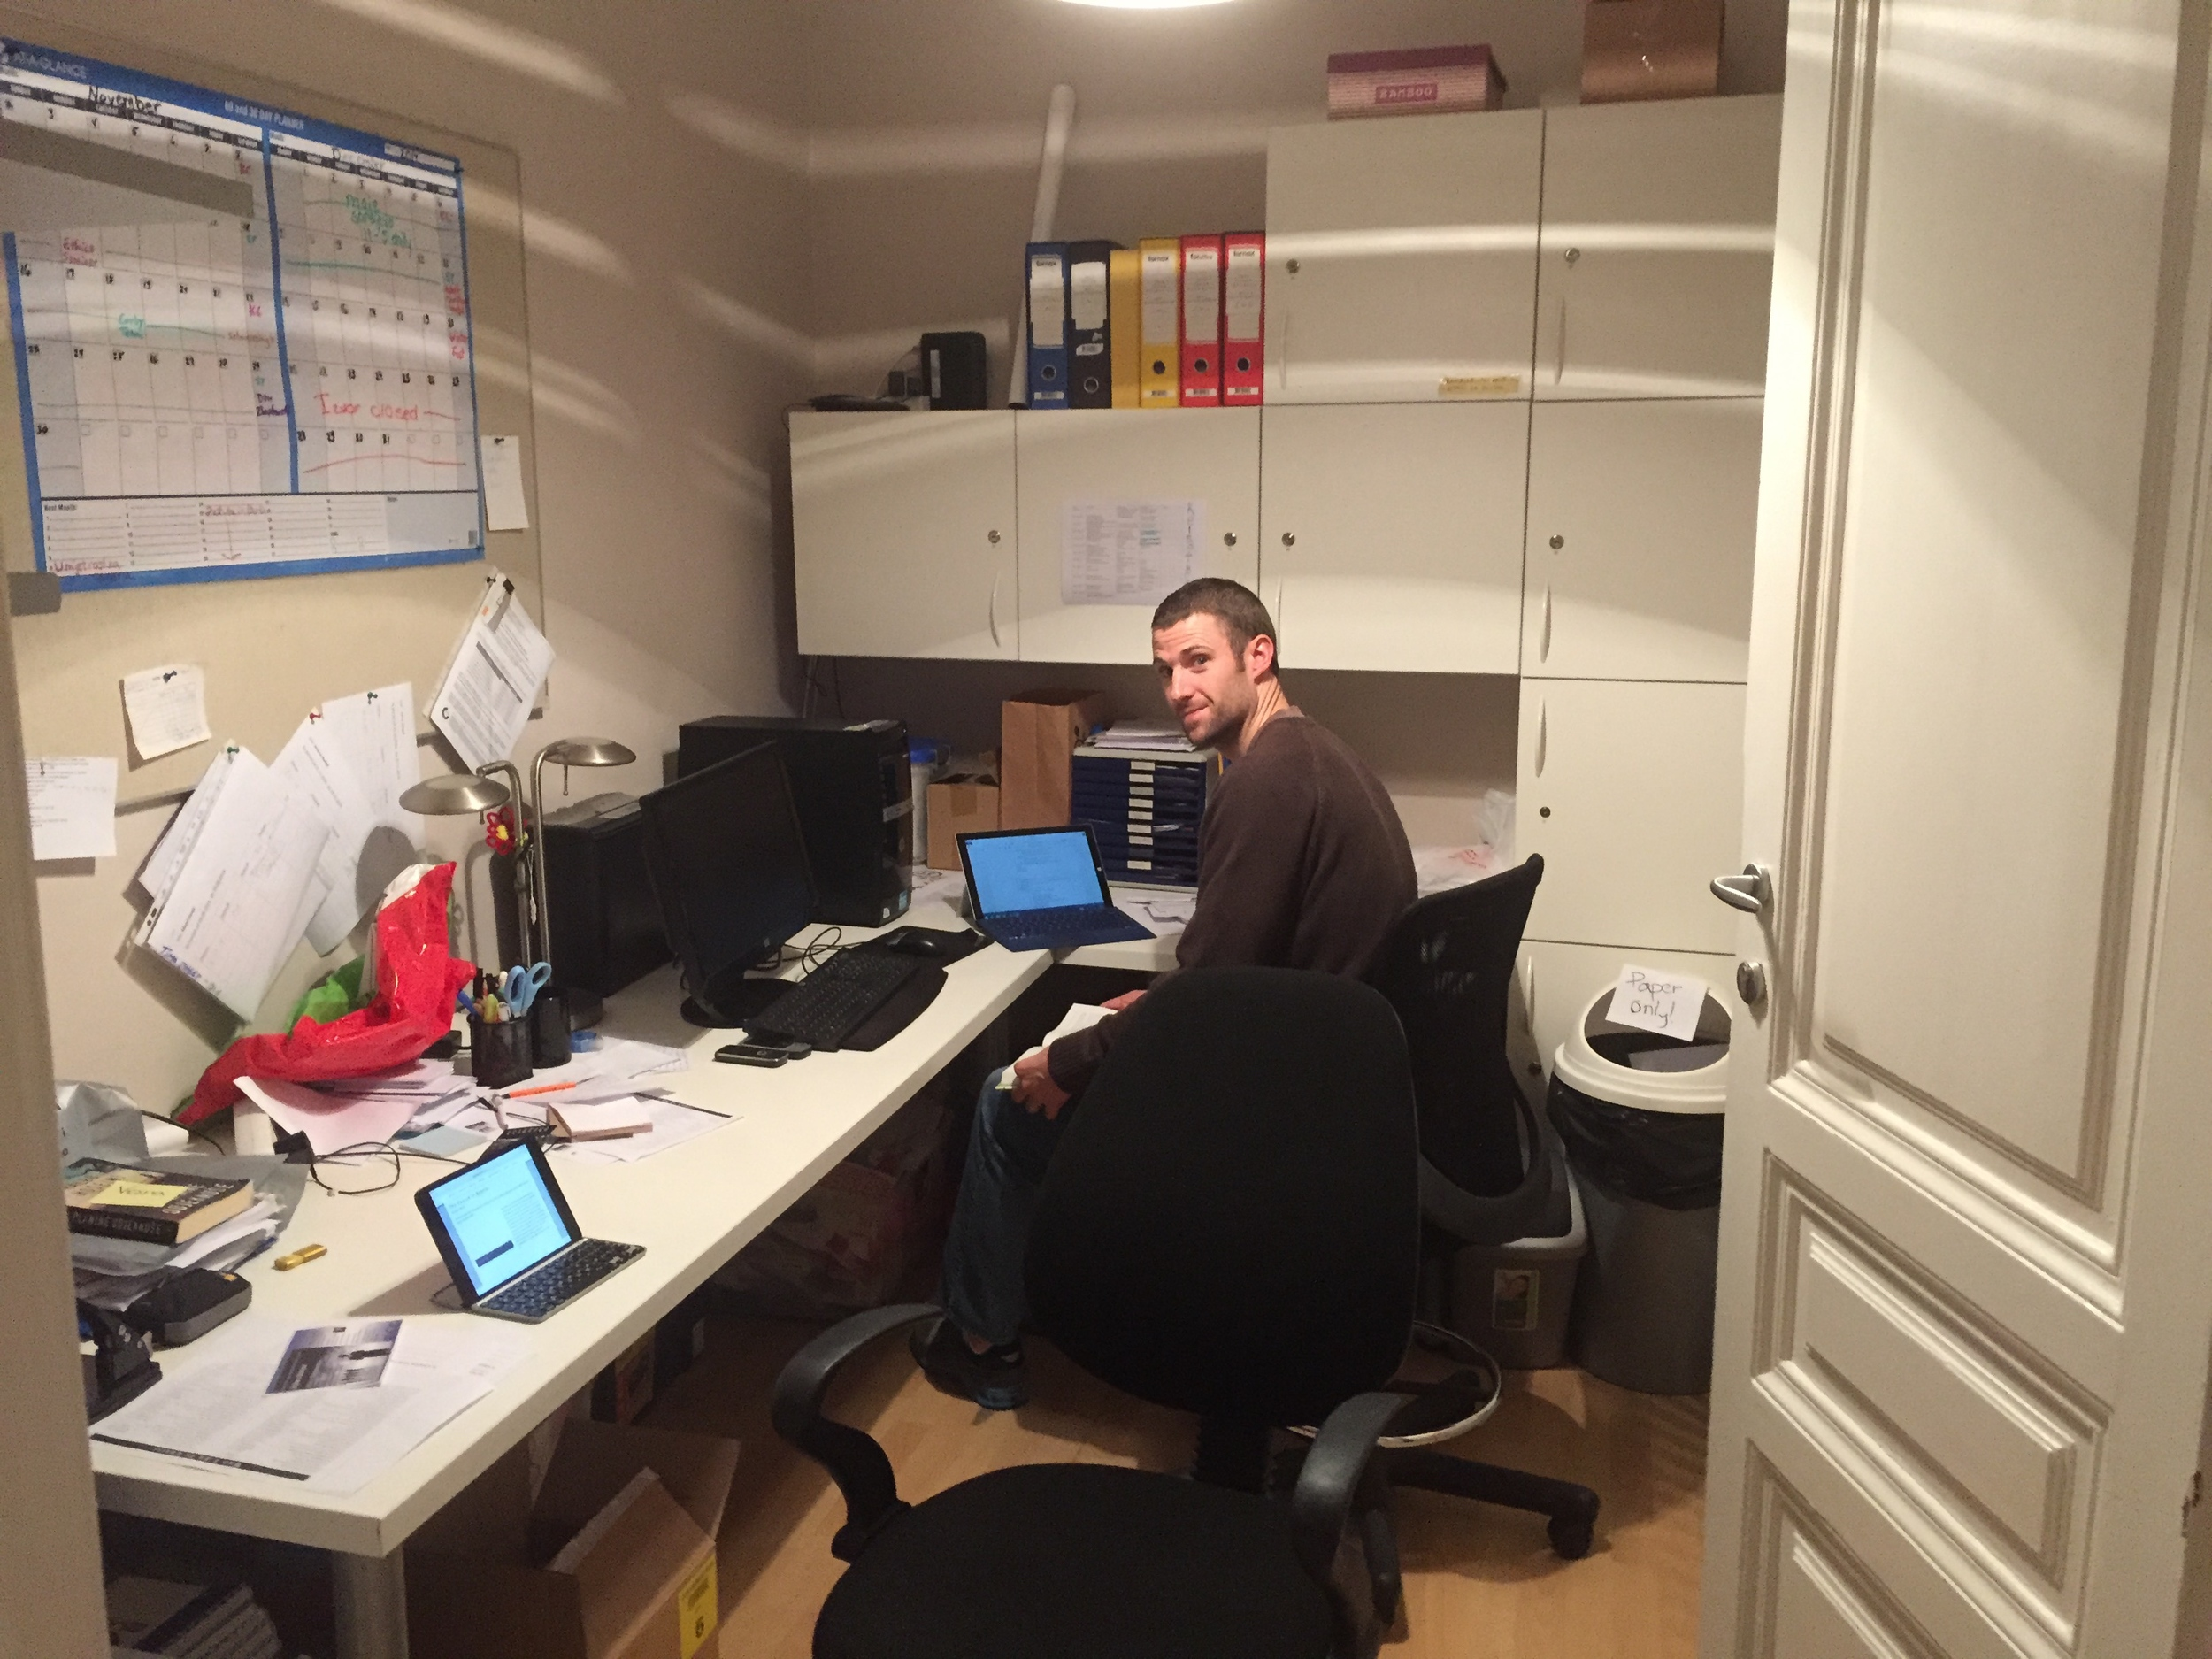 Nick doing some prep work in the office at Izvor.